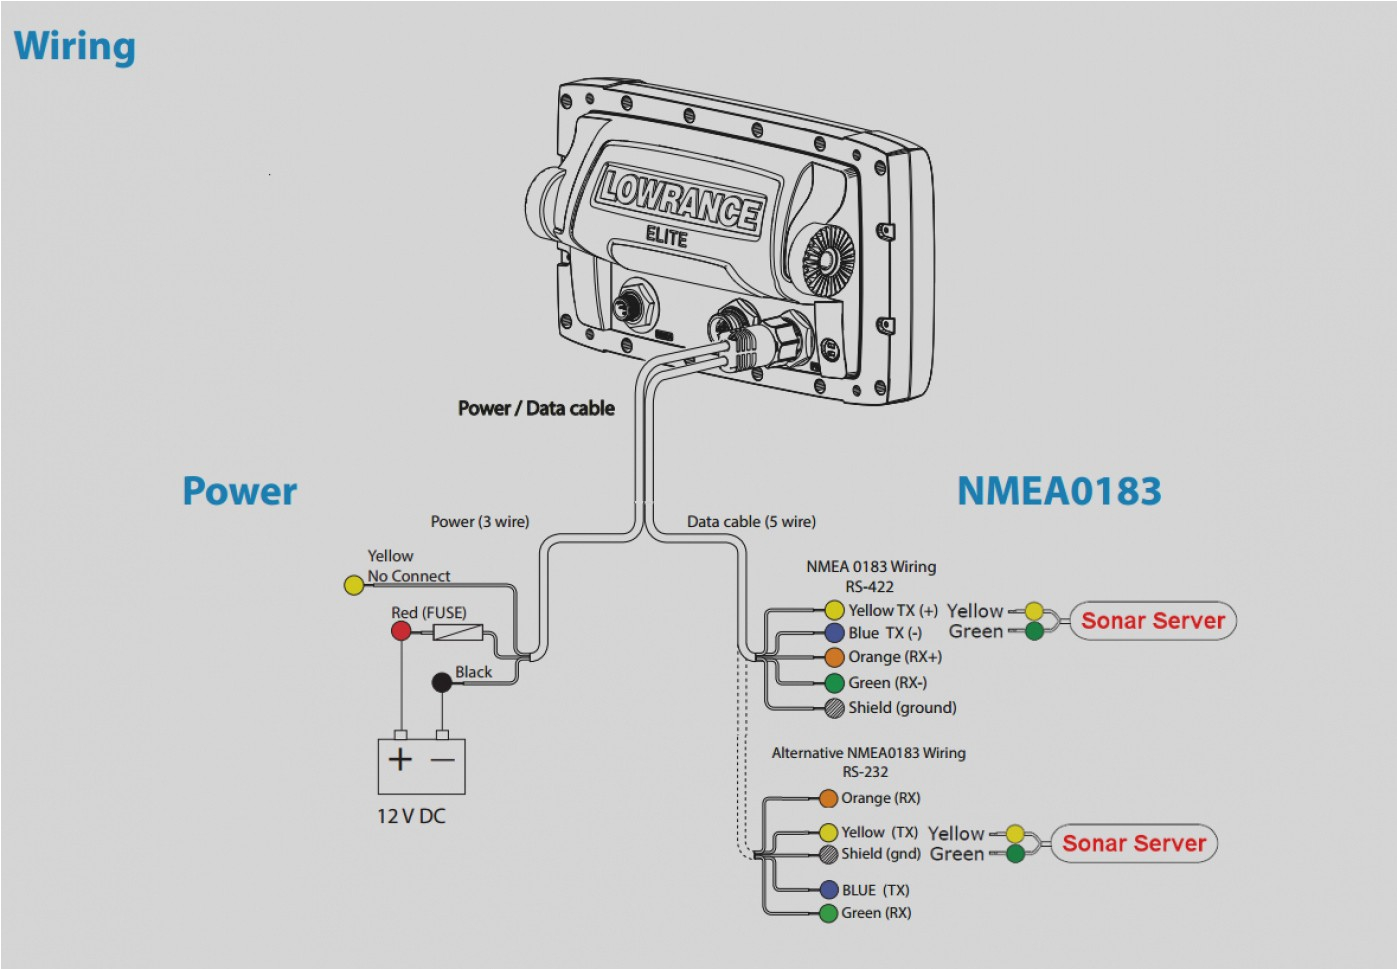 Garmin Power Cable Wiring Diagram Wiring Diagram for Humminbird Fish Finder Wiring Diagram Expert